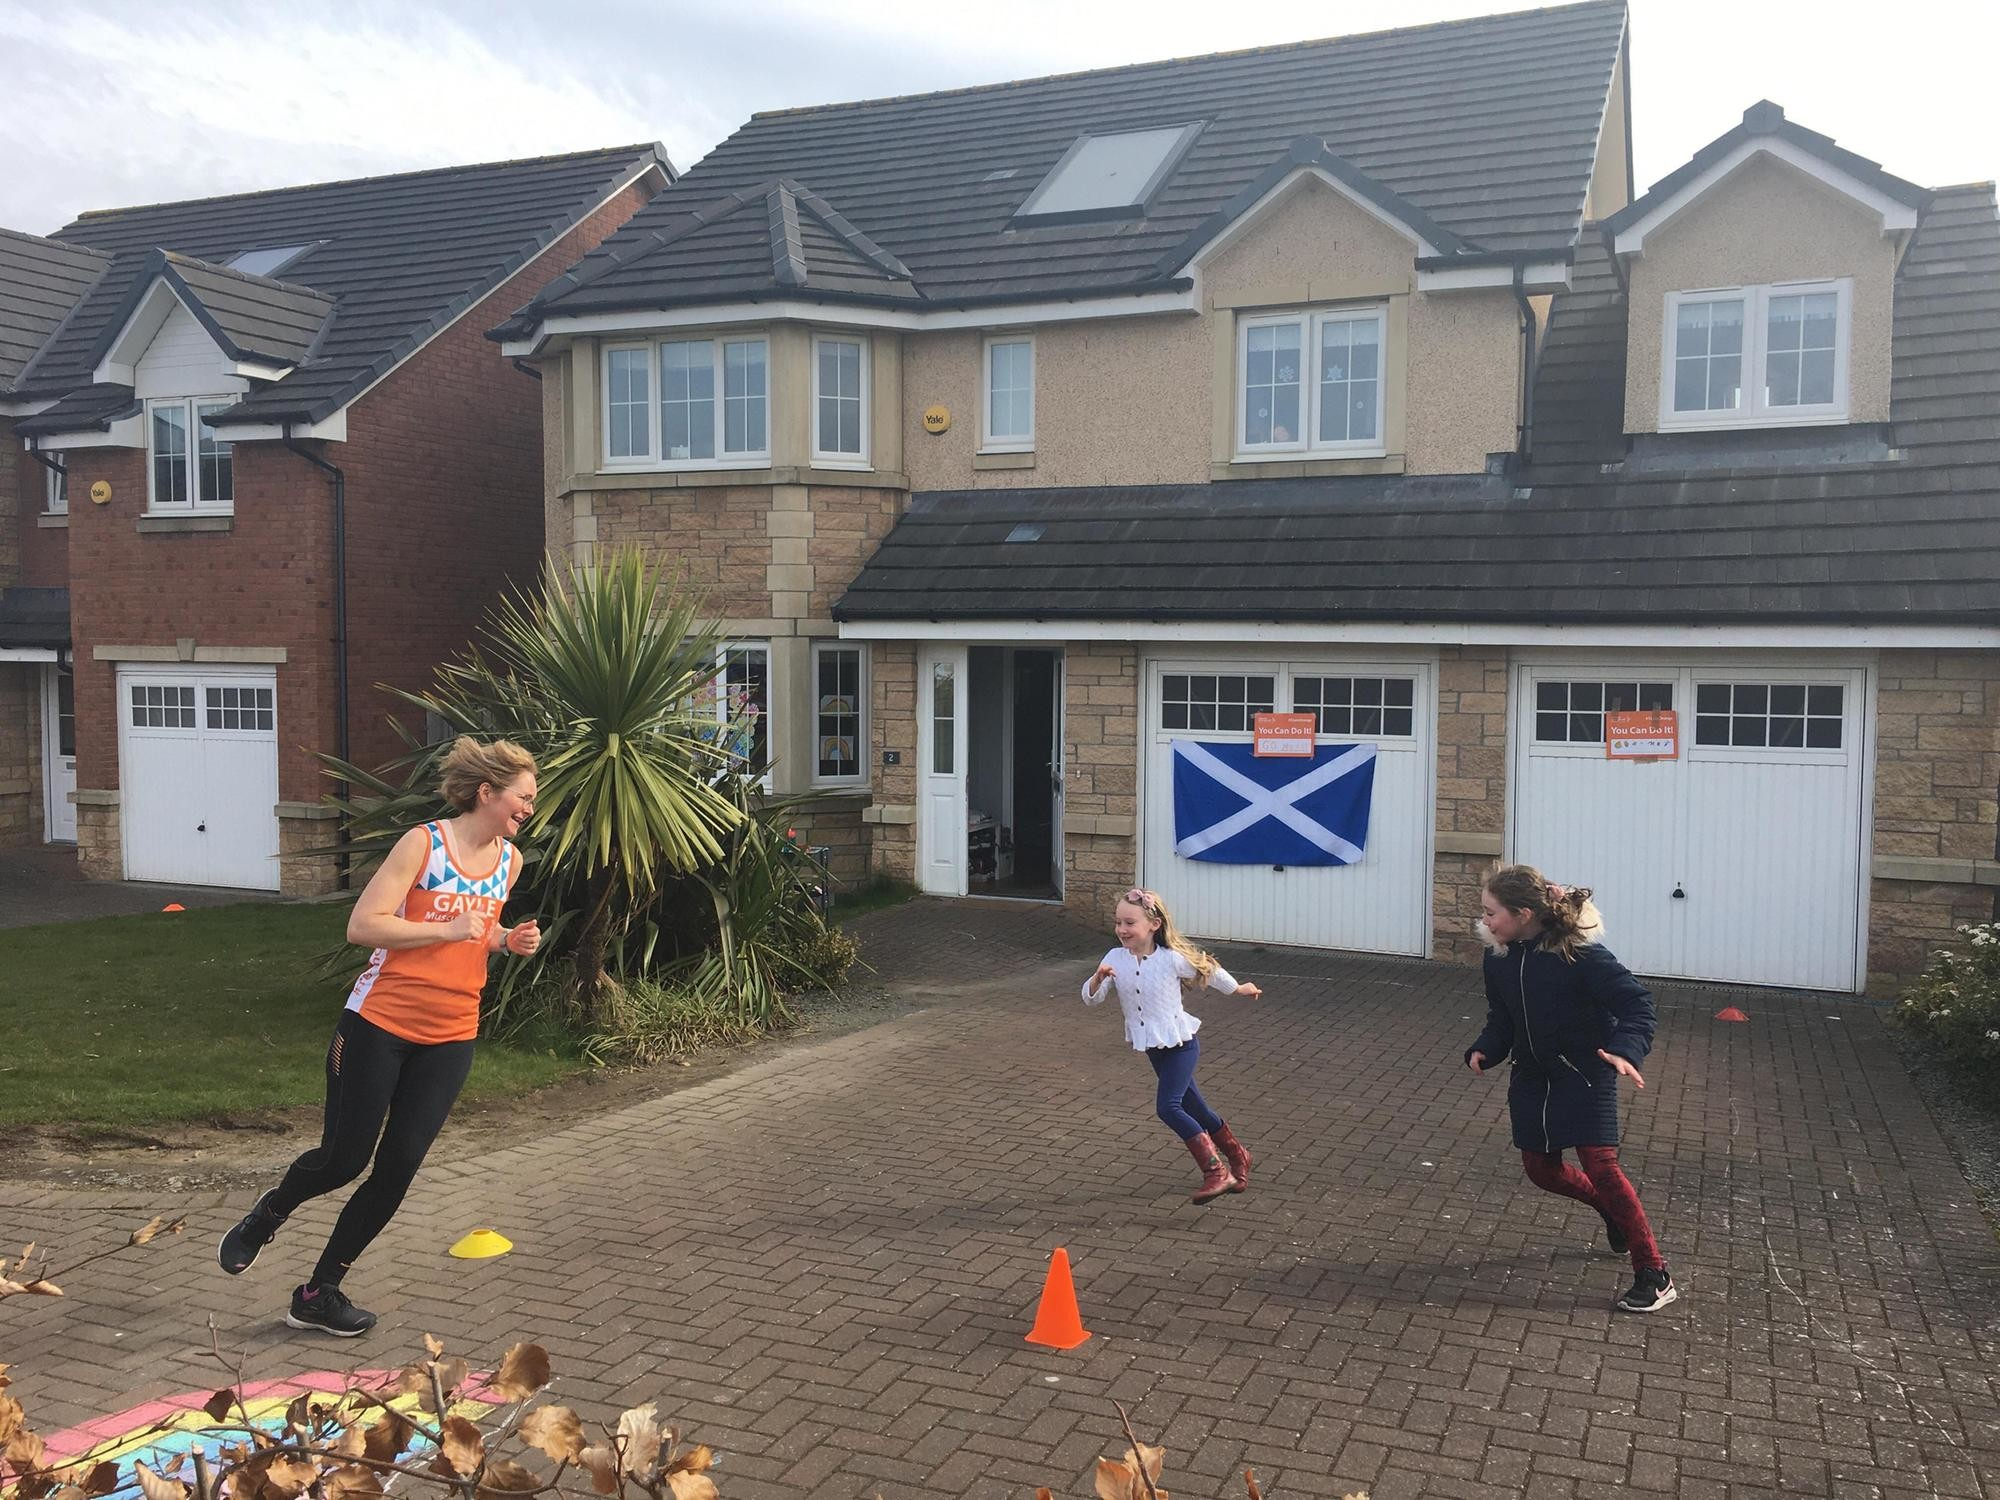 Gayle Hoy is a mother of three and she ran a marathon she had been training for  on her driveway